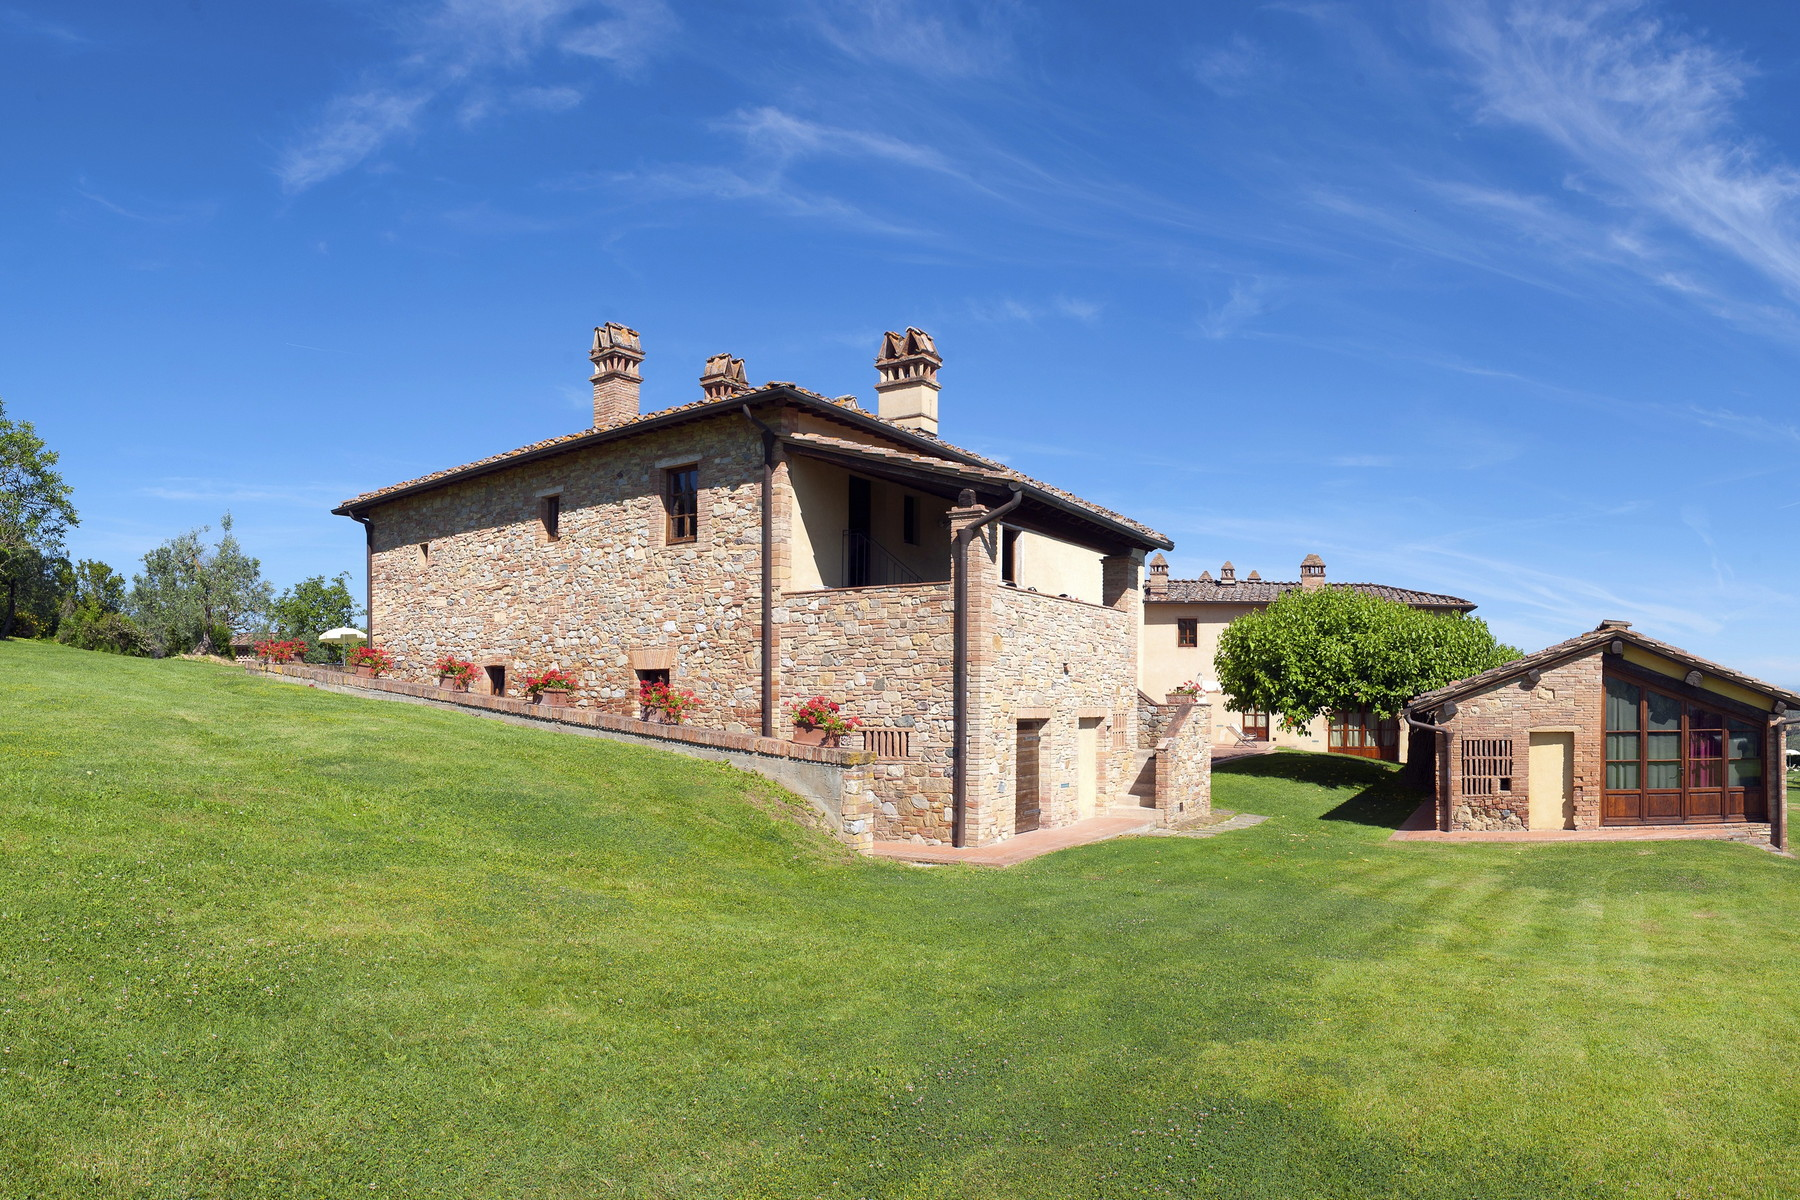 Additional photo for property listing at Multifunctional agriculture farm in San Gimignano Località Santo Pietro San Gimignano, Siena 53037 Italien